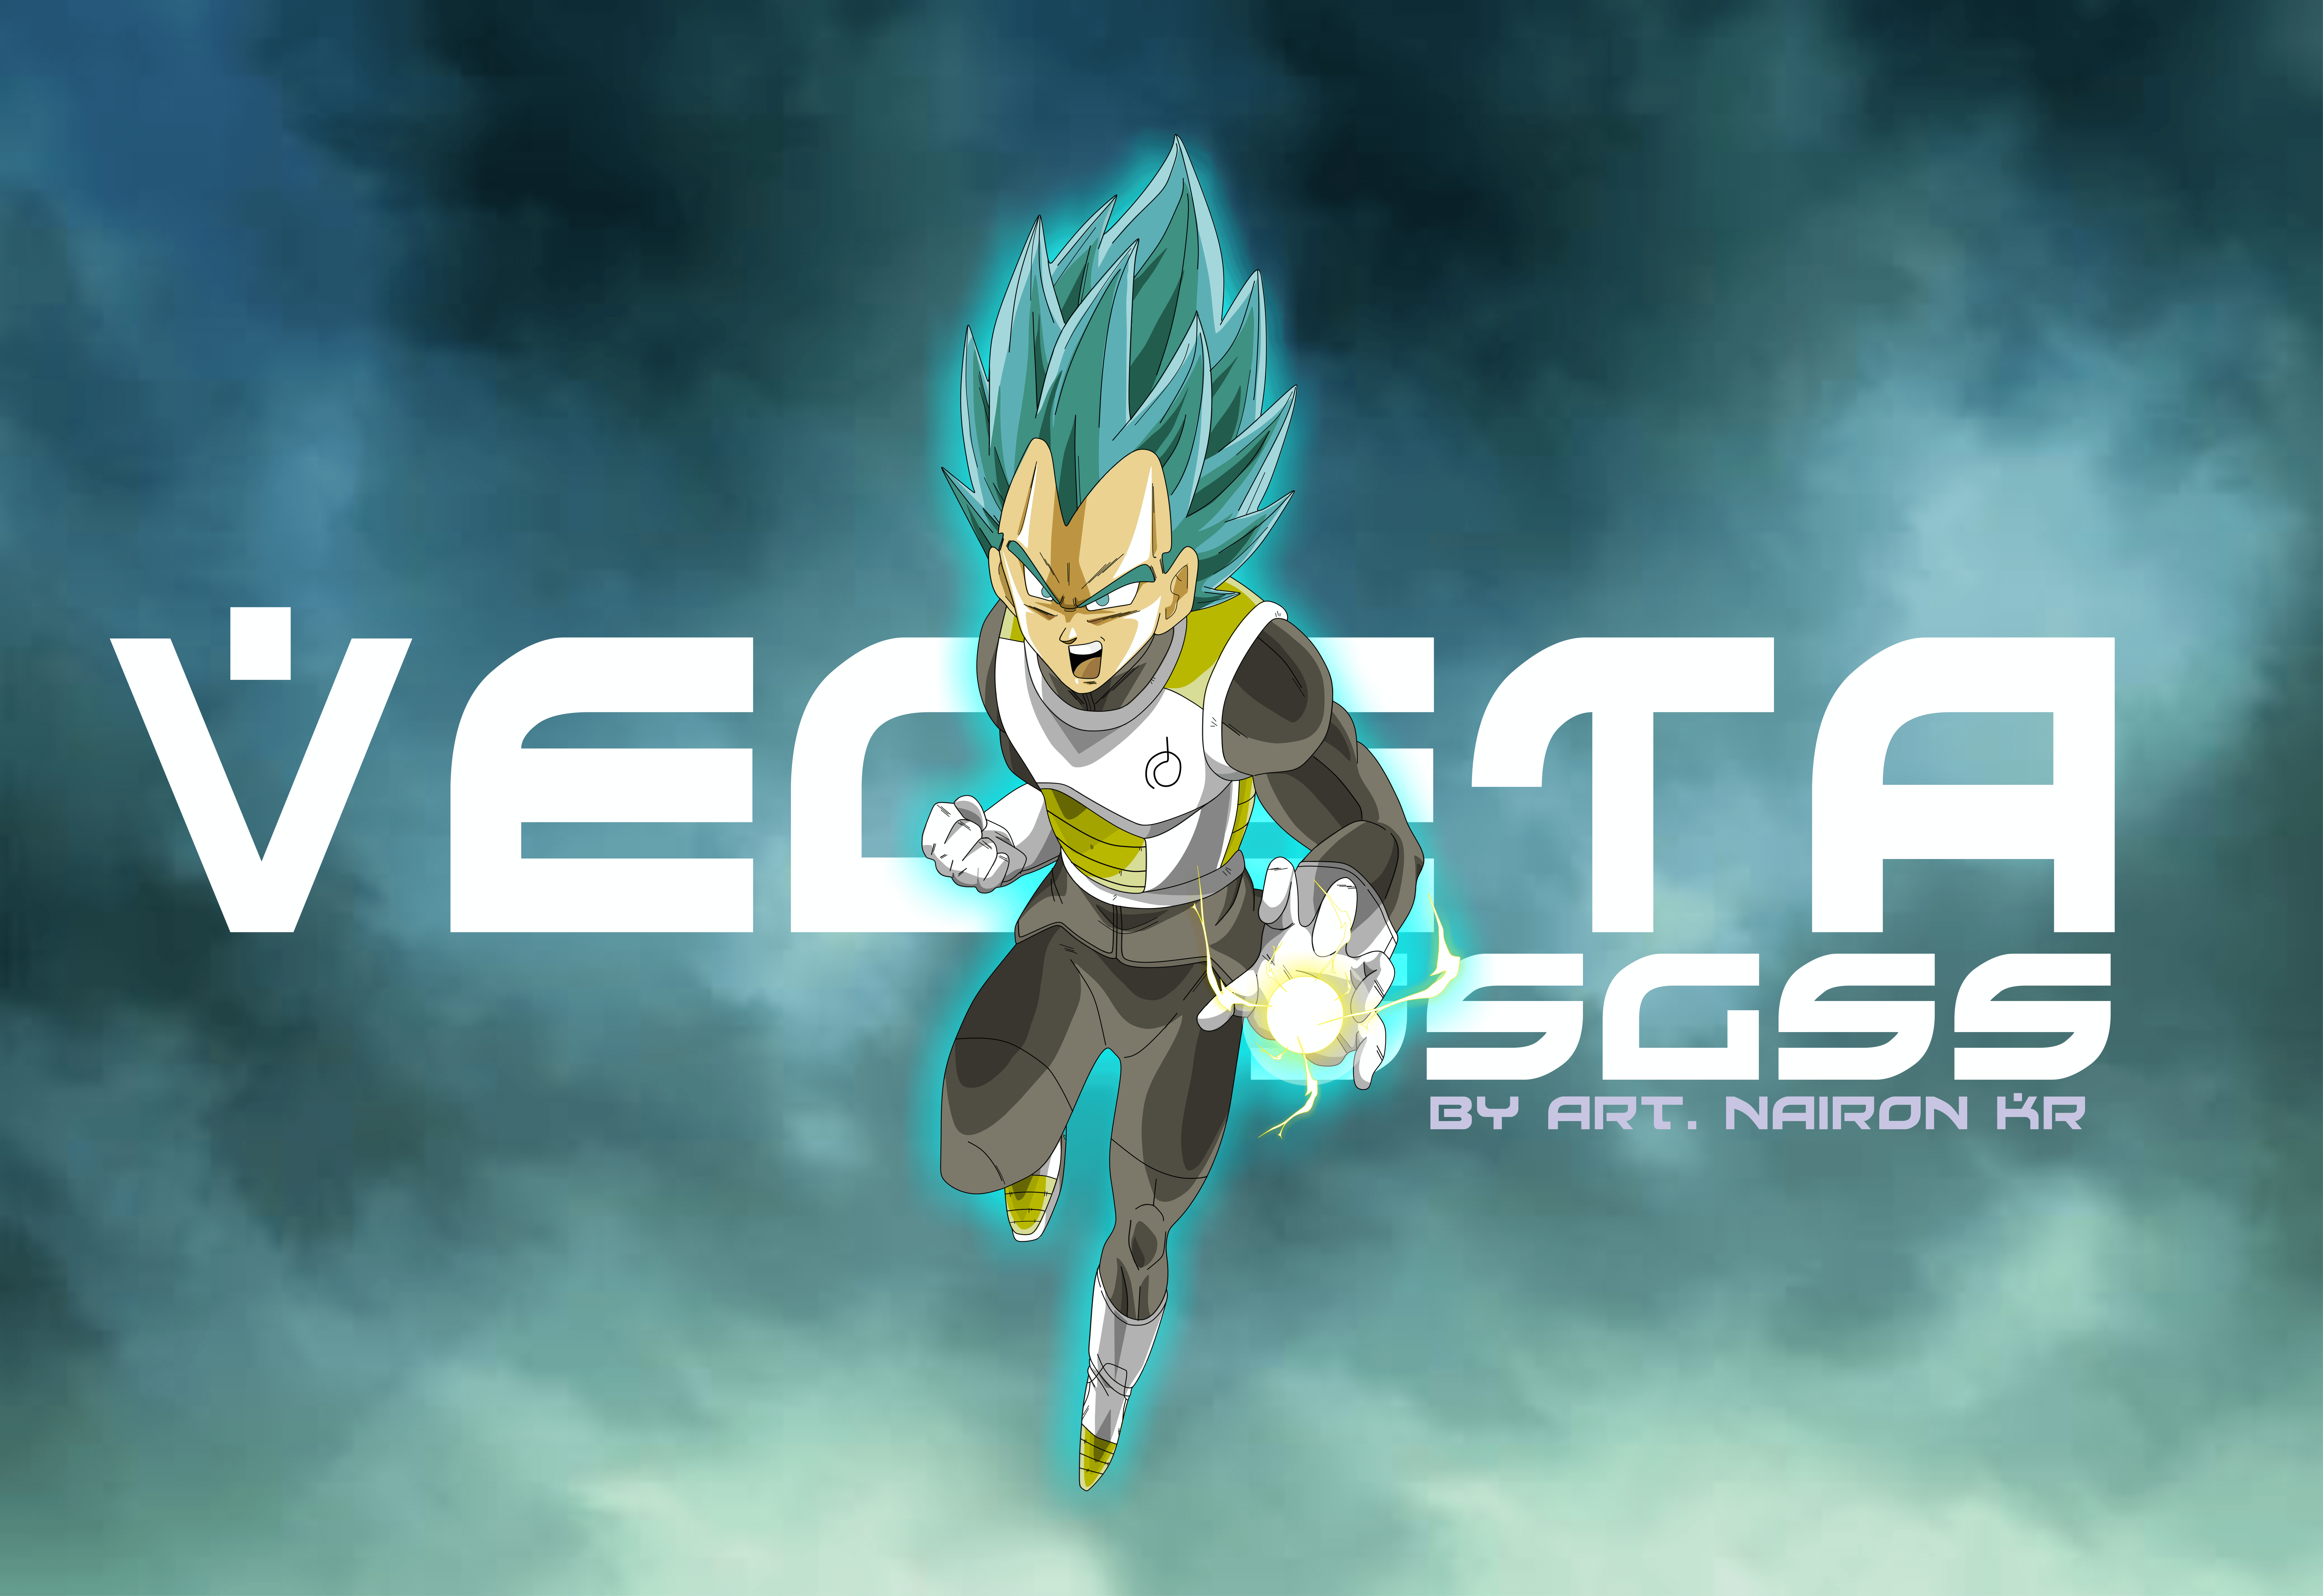 Vegeta blue wallpapers wallpaper cave - Vegeta wallpapers for mobile ...